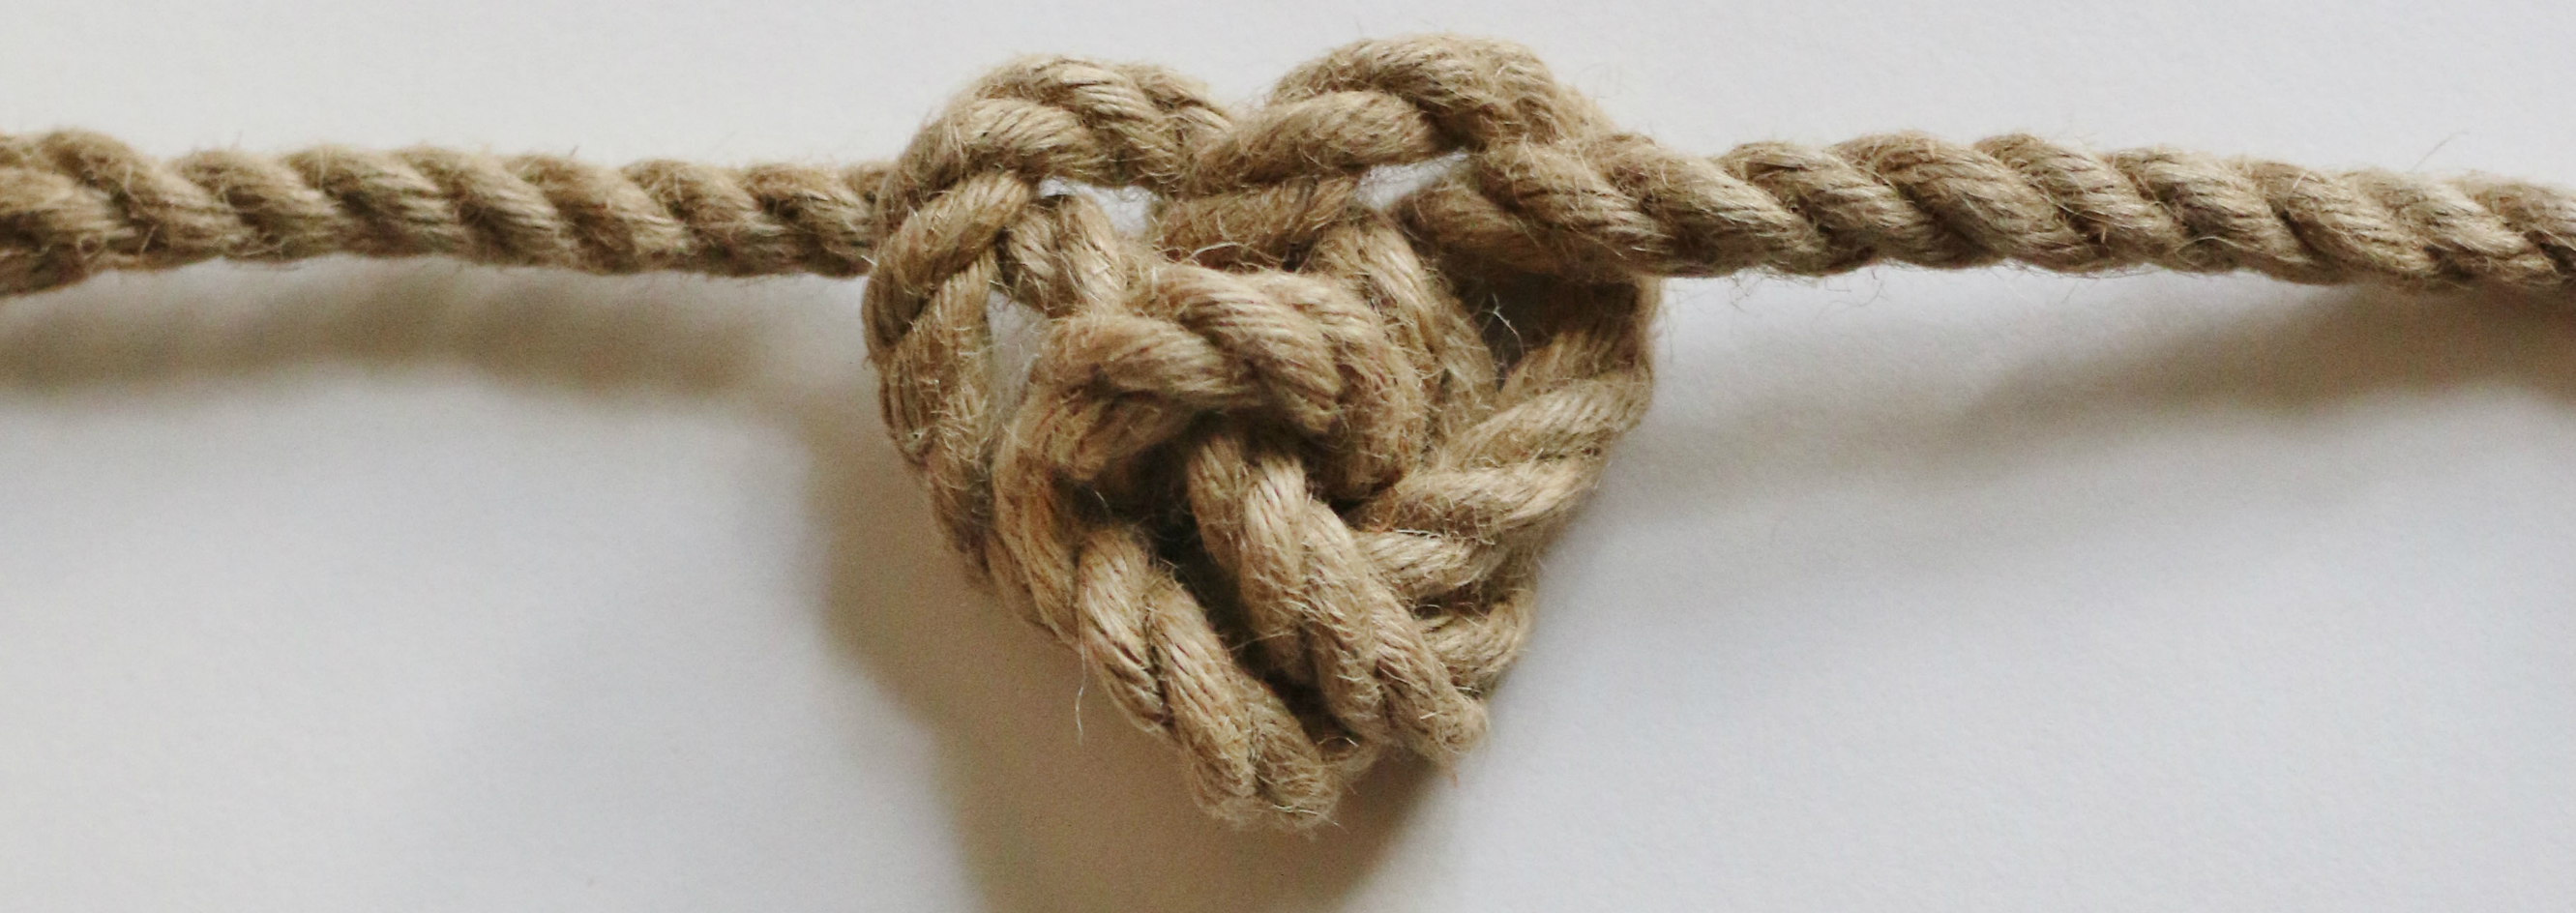 tying_the_knot_banner